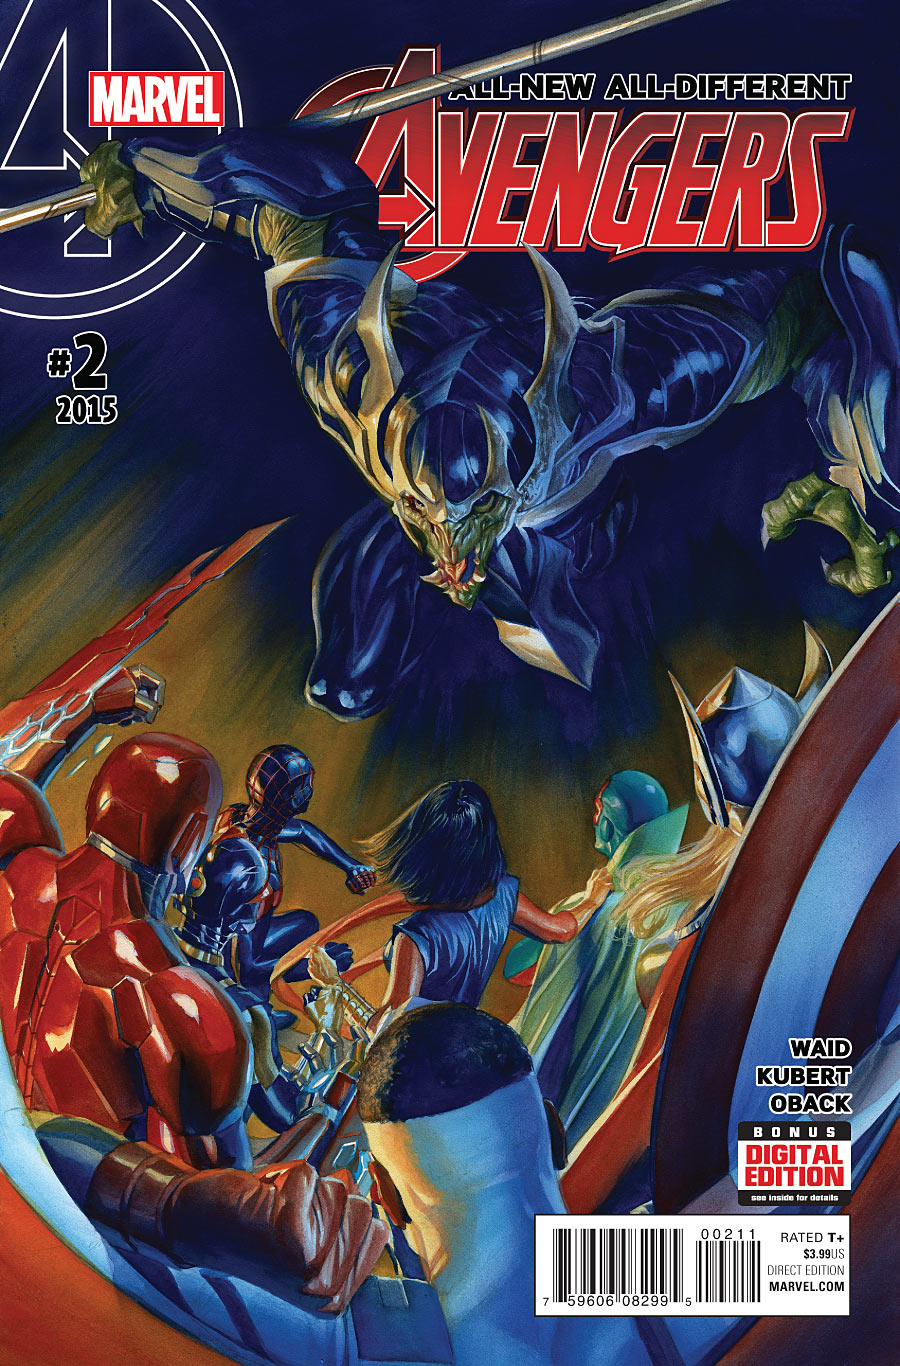 ALL NEW ALL DIFFERENT AVENGERS #2 (2015) VF/NM MARVEL